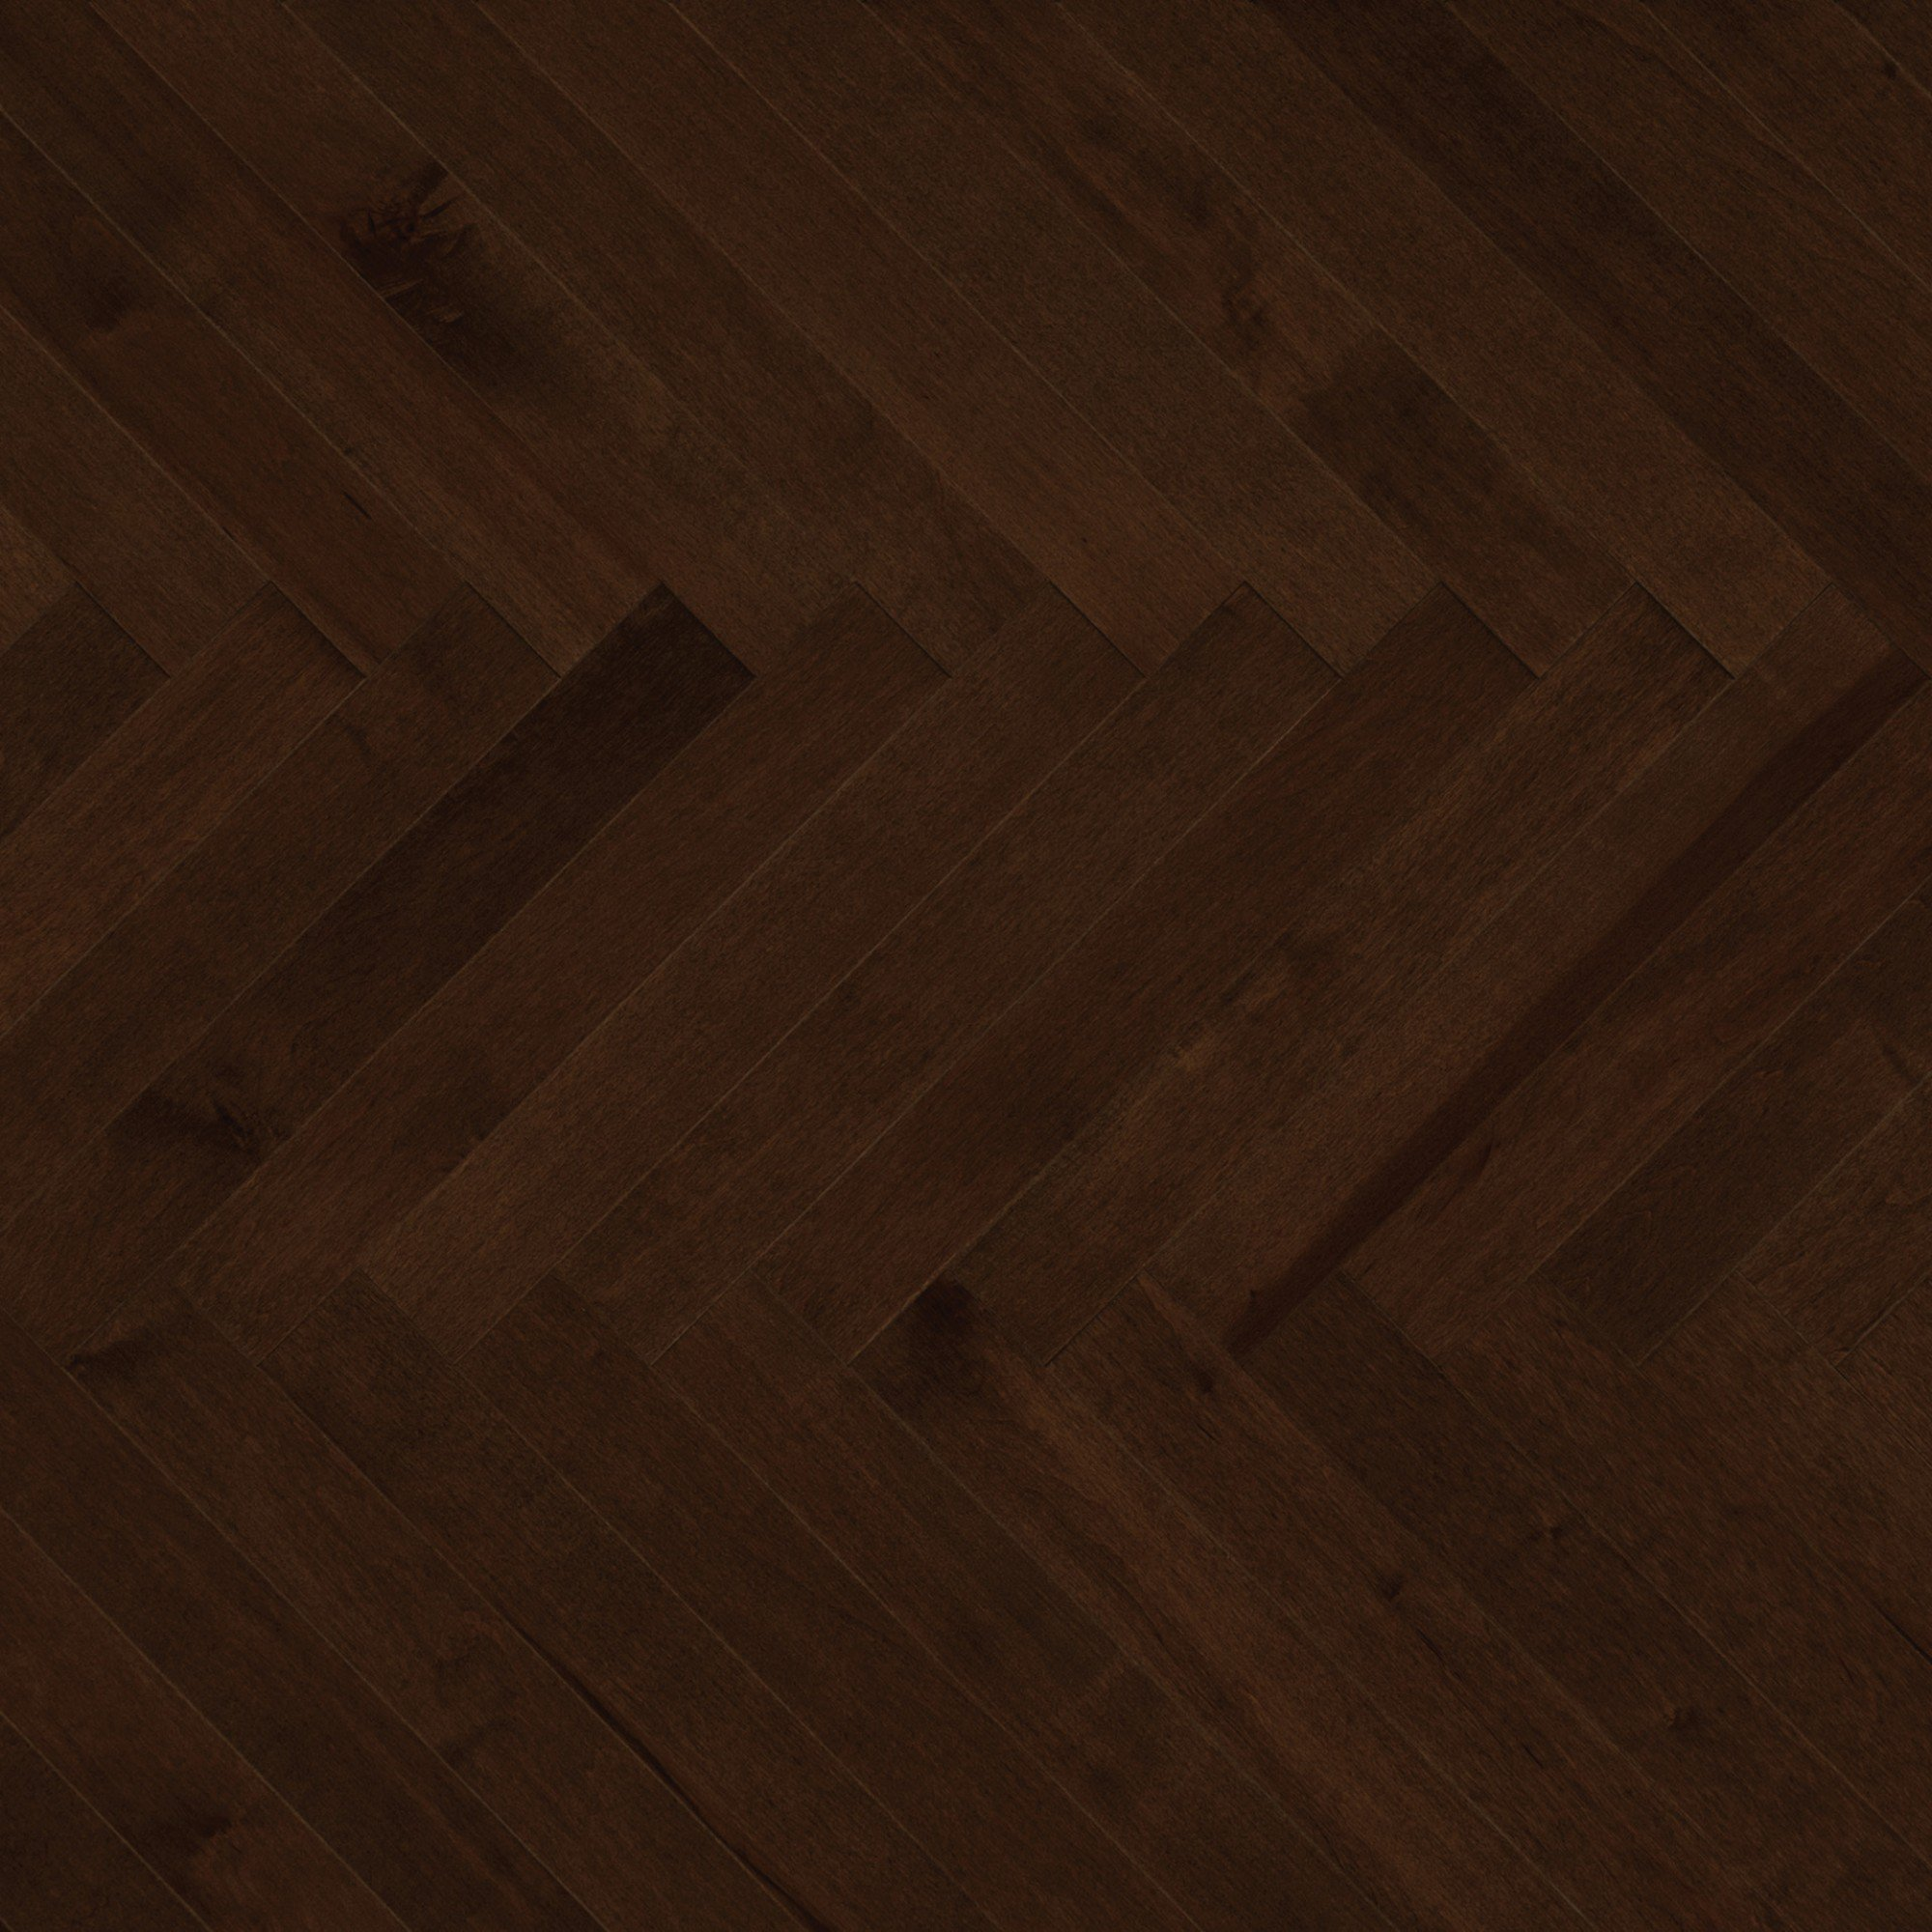 Maple Java - Floor image